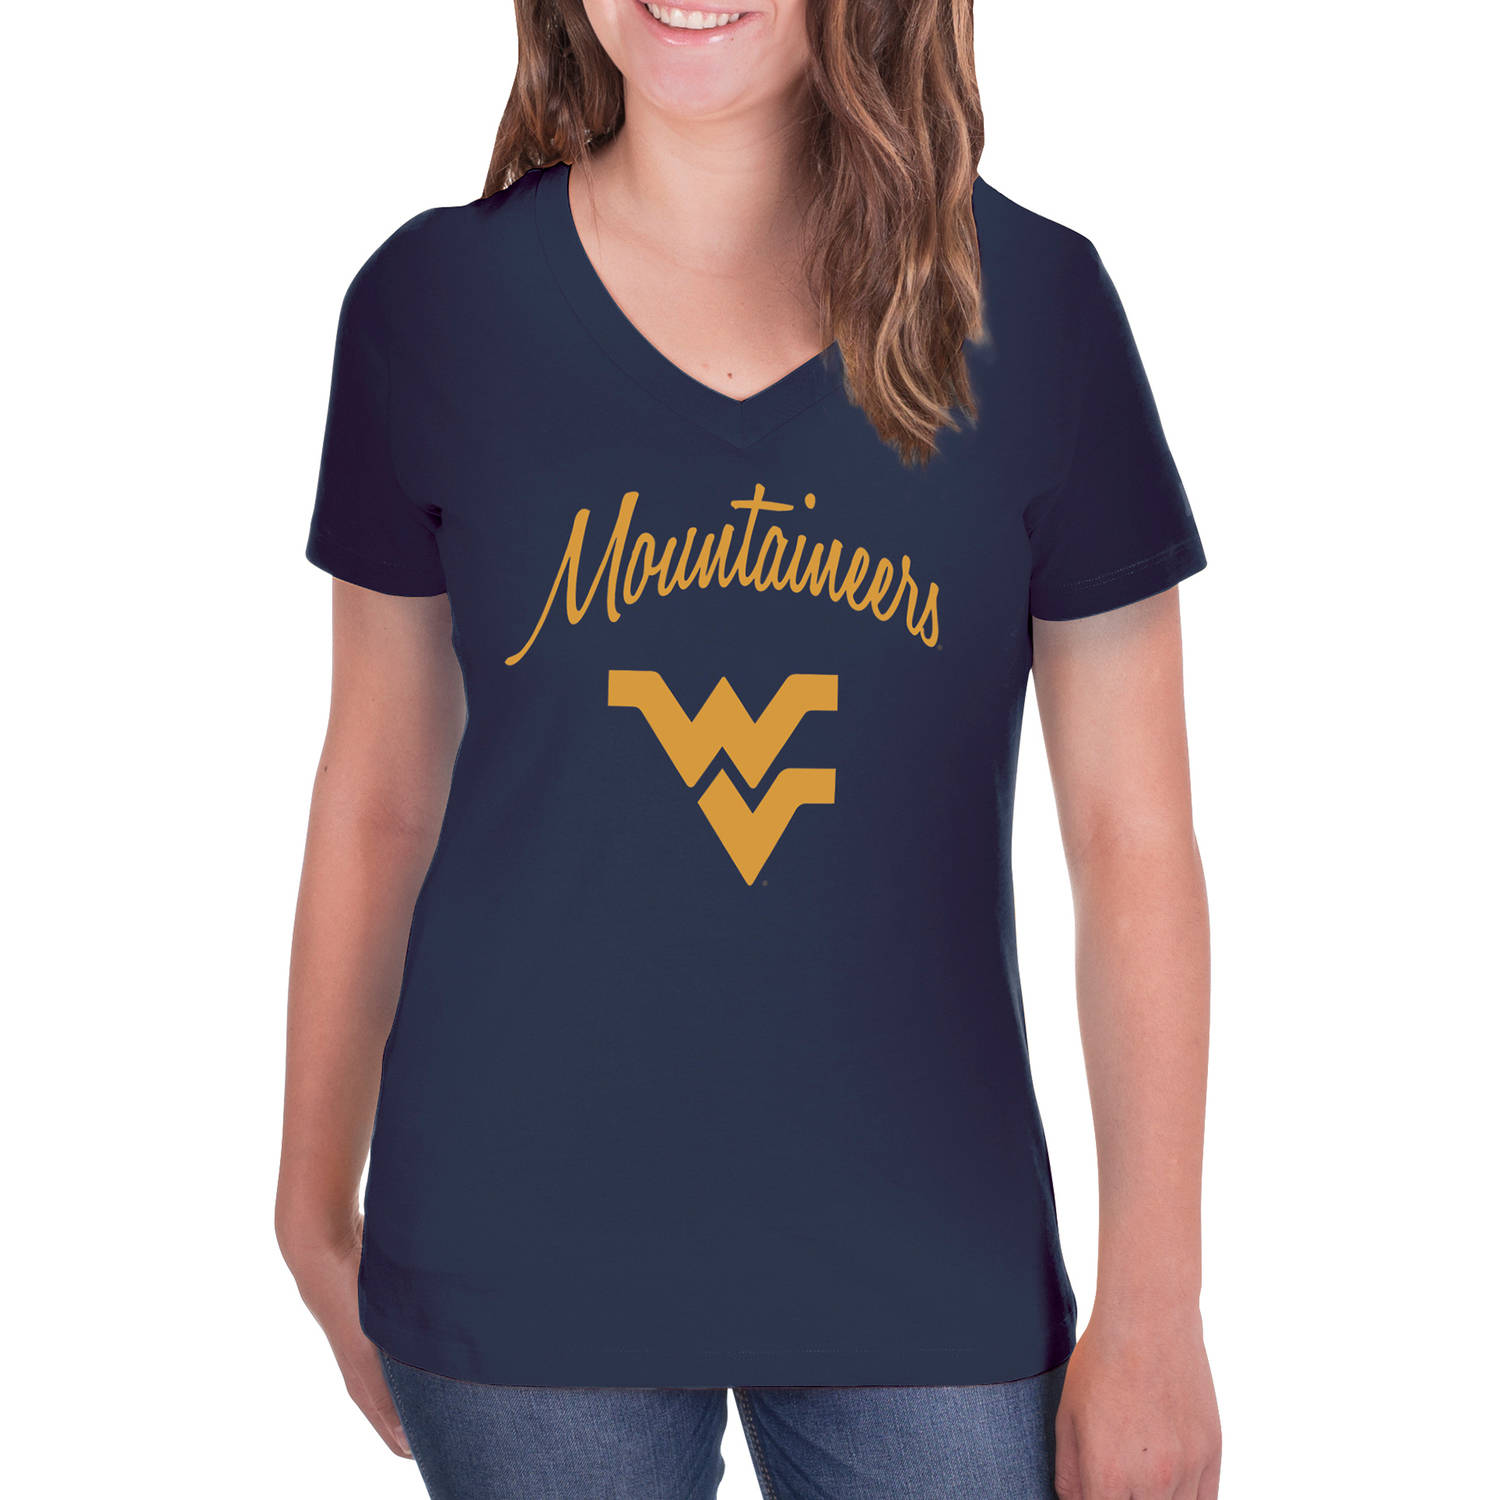 NCAA West Virginia Mountaineers Women's V-Neck Tunic Cotton Tee Shirt